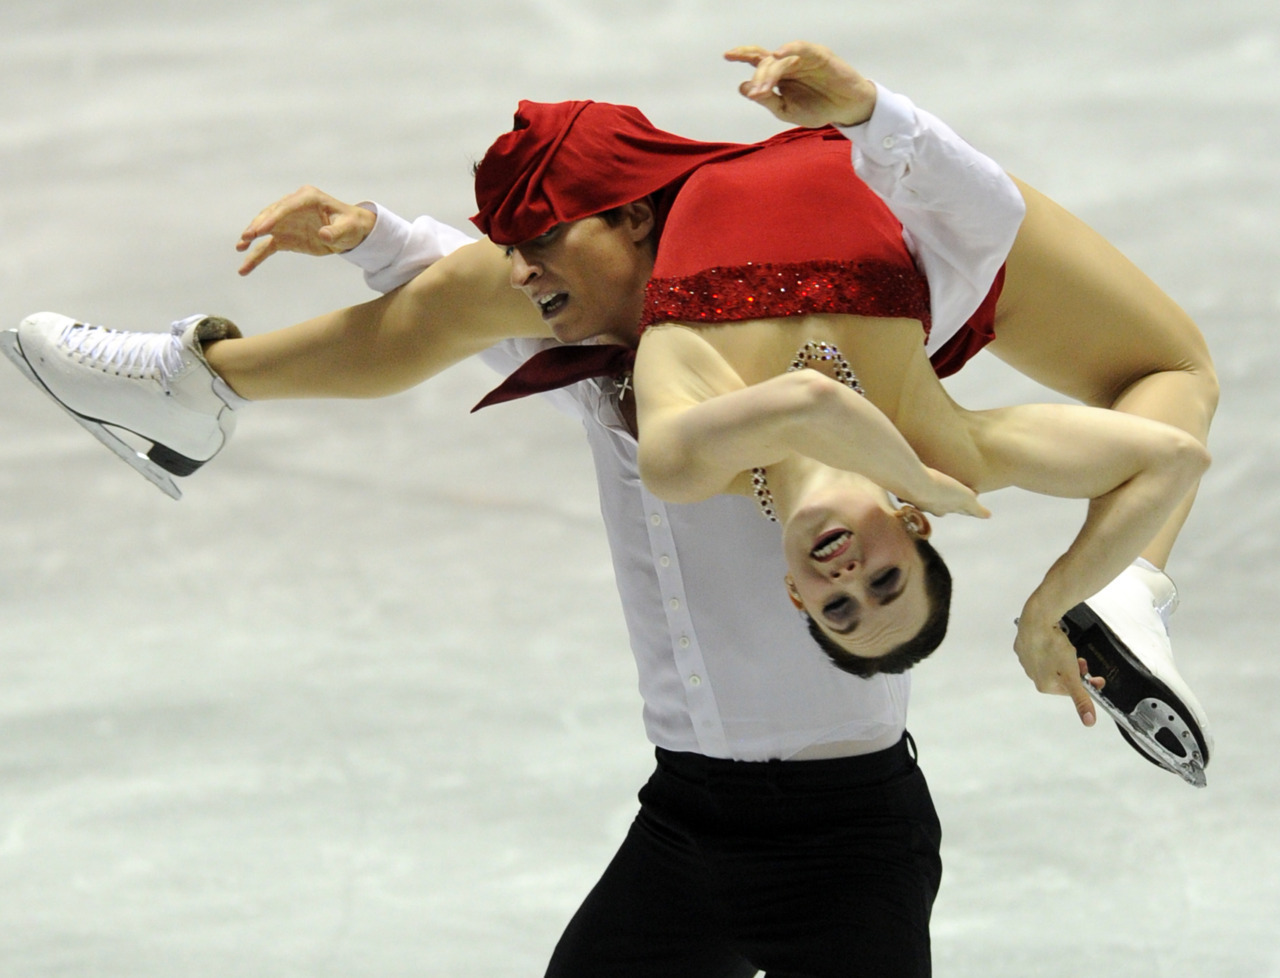 nationalpostsports:  Canada's Tessa Virtue and Scott Moir get a little tangled up during the free dance event  of the World Team Trophy 2012 figure skating competition. (Photo: Toshifumi Kitamura/AFP/ Getty Images)